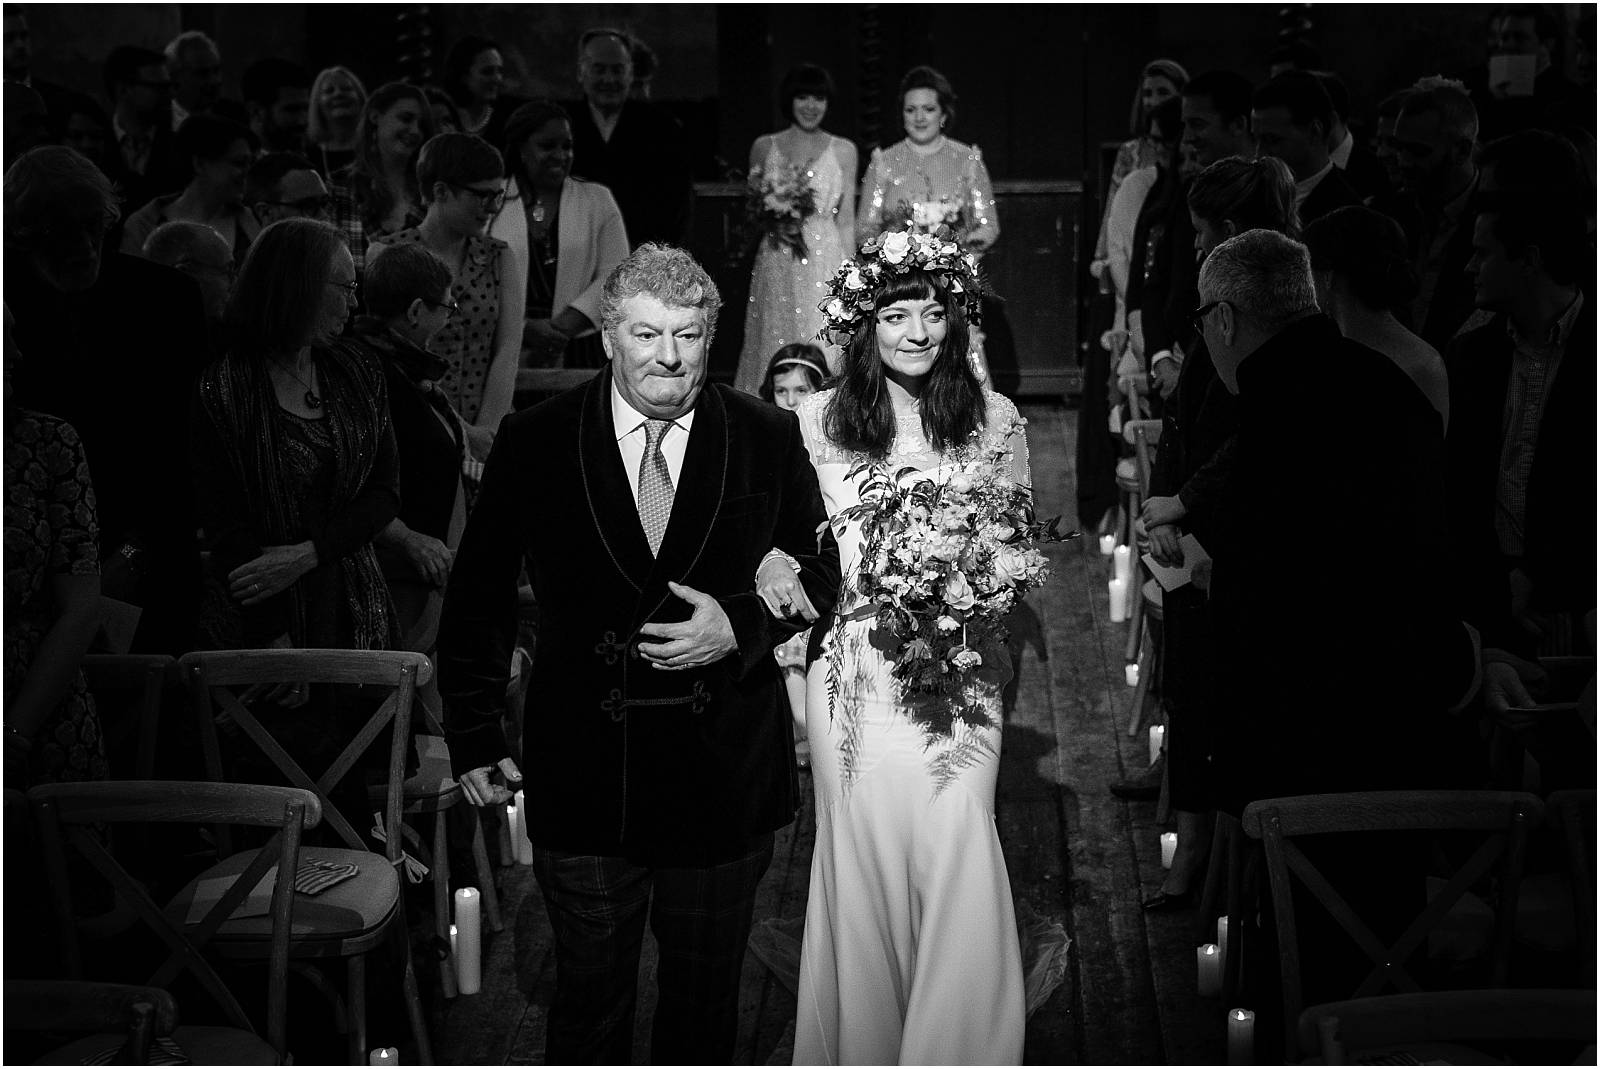 walking down aisle in black and white